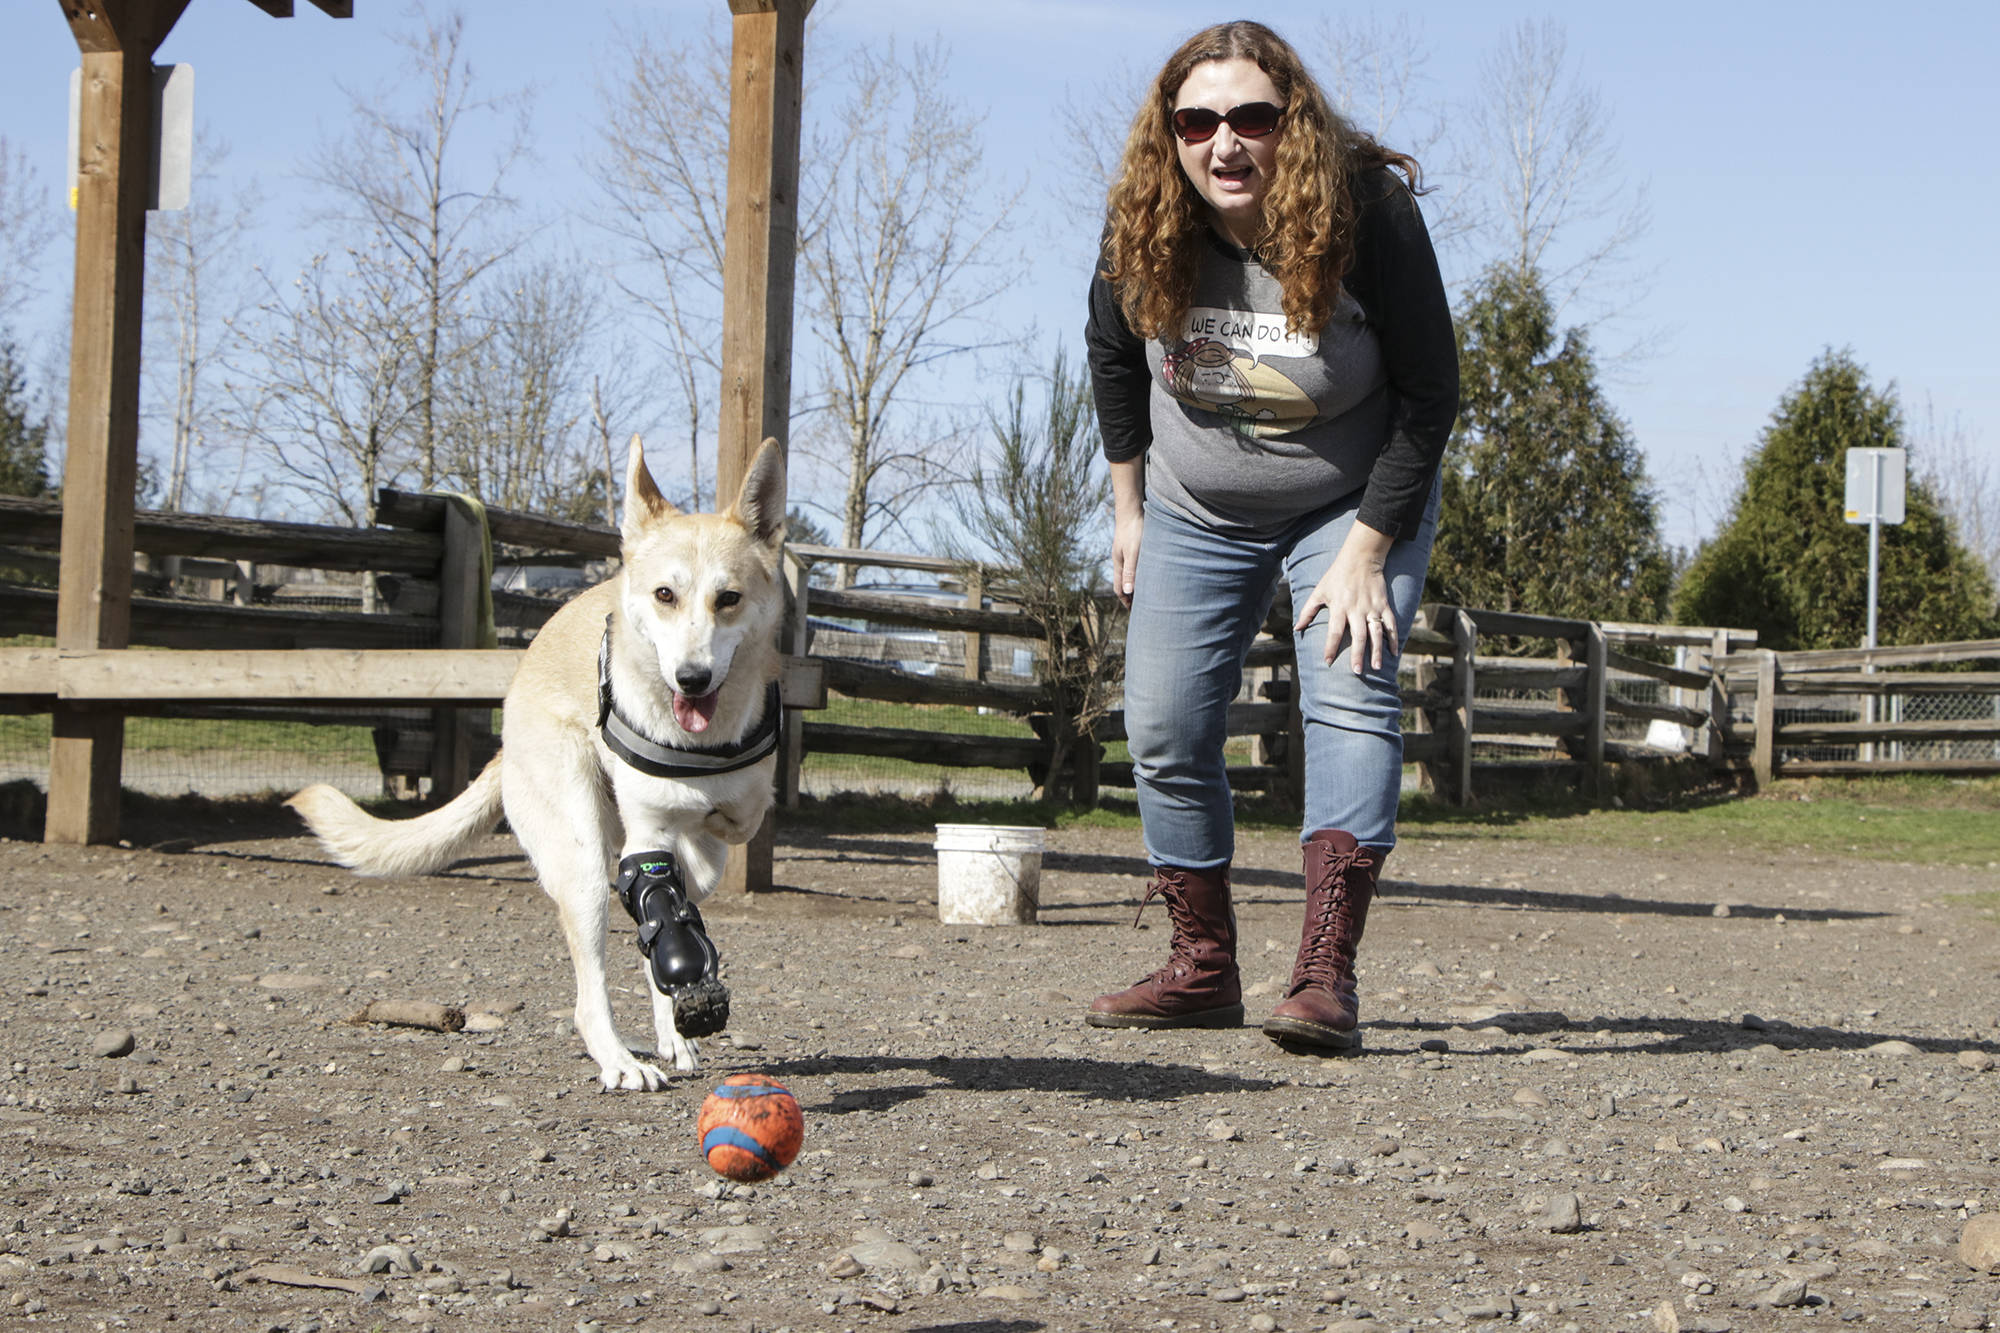 Roo chases after a ball tossed by her human Julie Horncastle at the Clearbrook off-leash dog park in Abbotsford. Roo just received a new prosthetic leg a few days ago and is still navigating life with a third leg. Dustin Godfrey/Abbotsford News